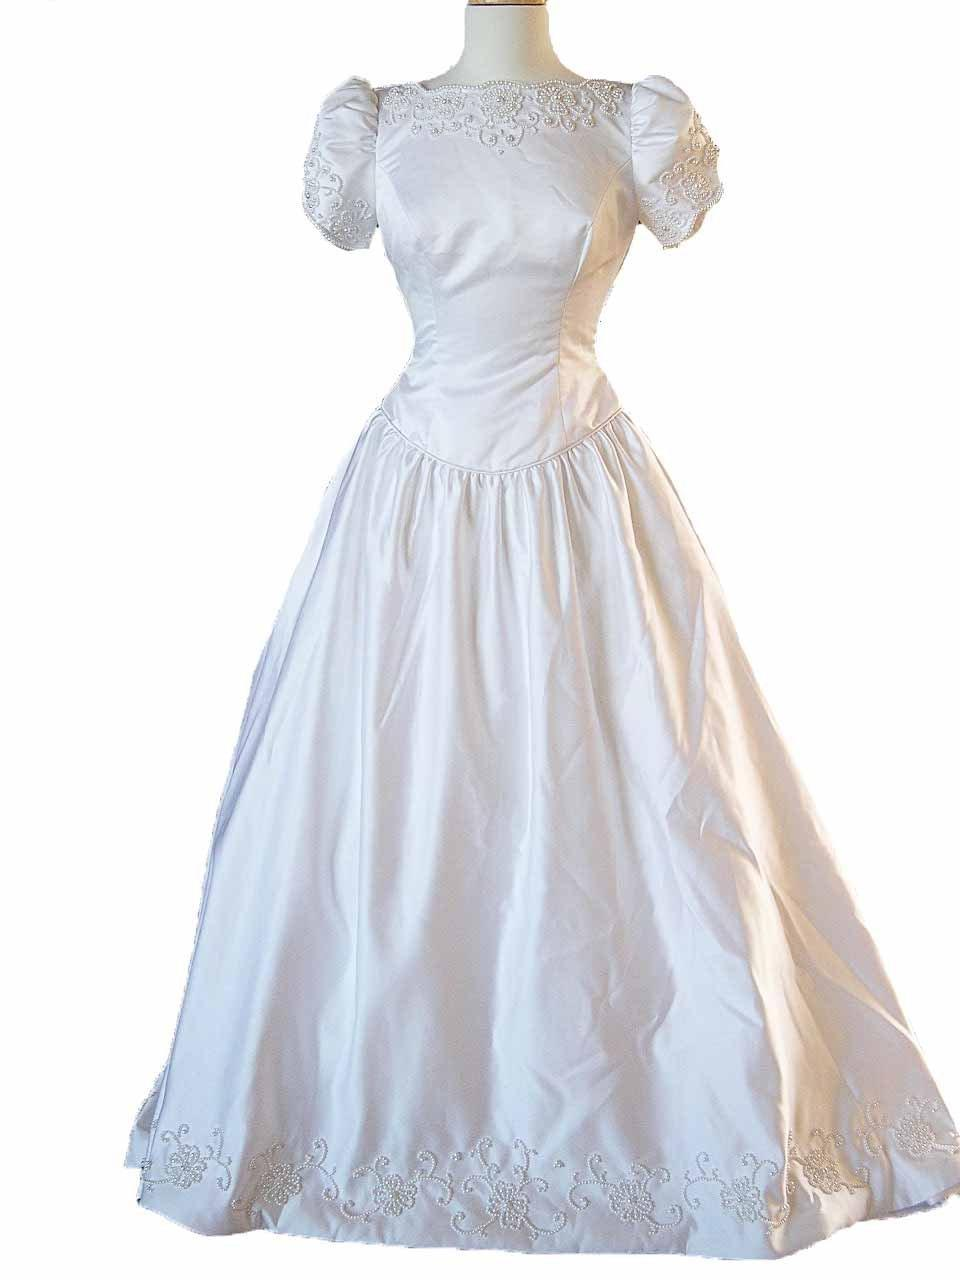 Simple Elegant Wedding Dresses special offer, discount 85  today from